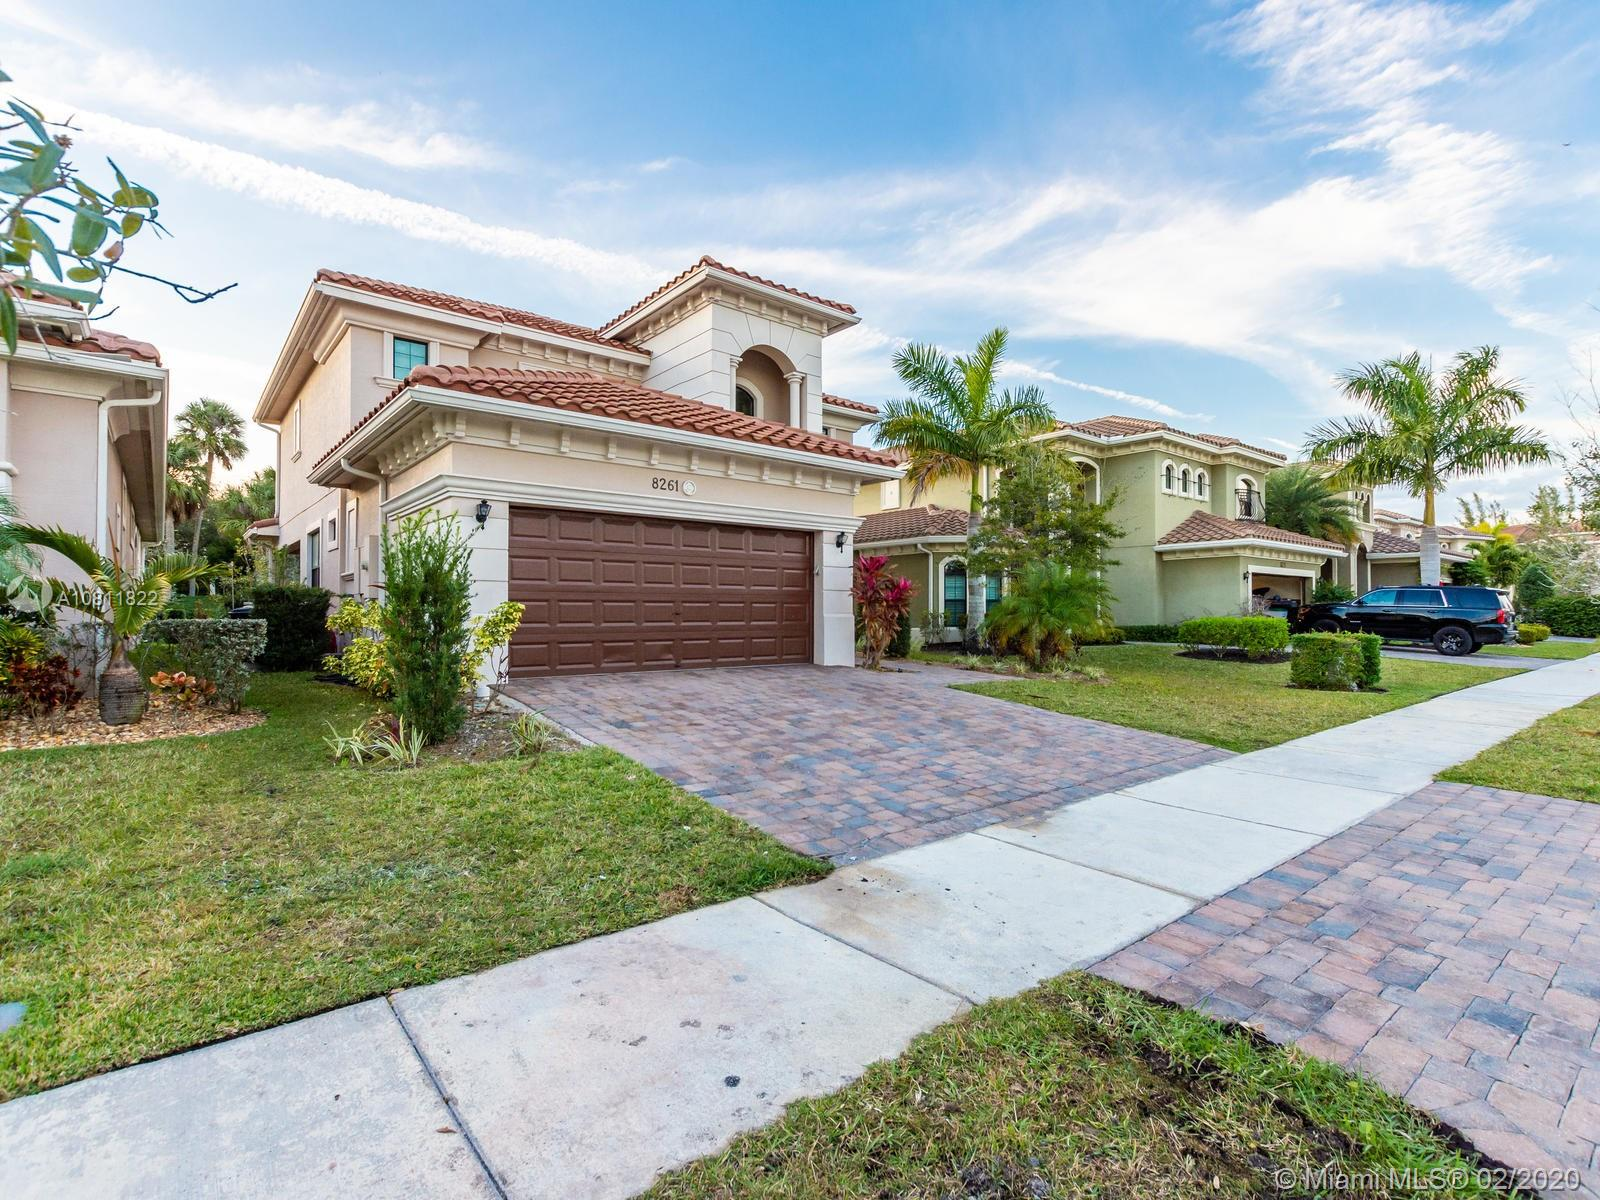 Listing A10811822 - Large Photo # 2